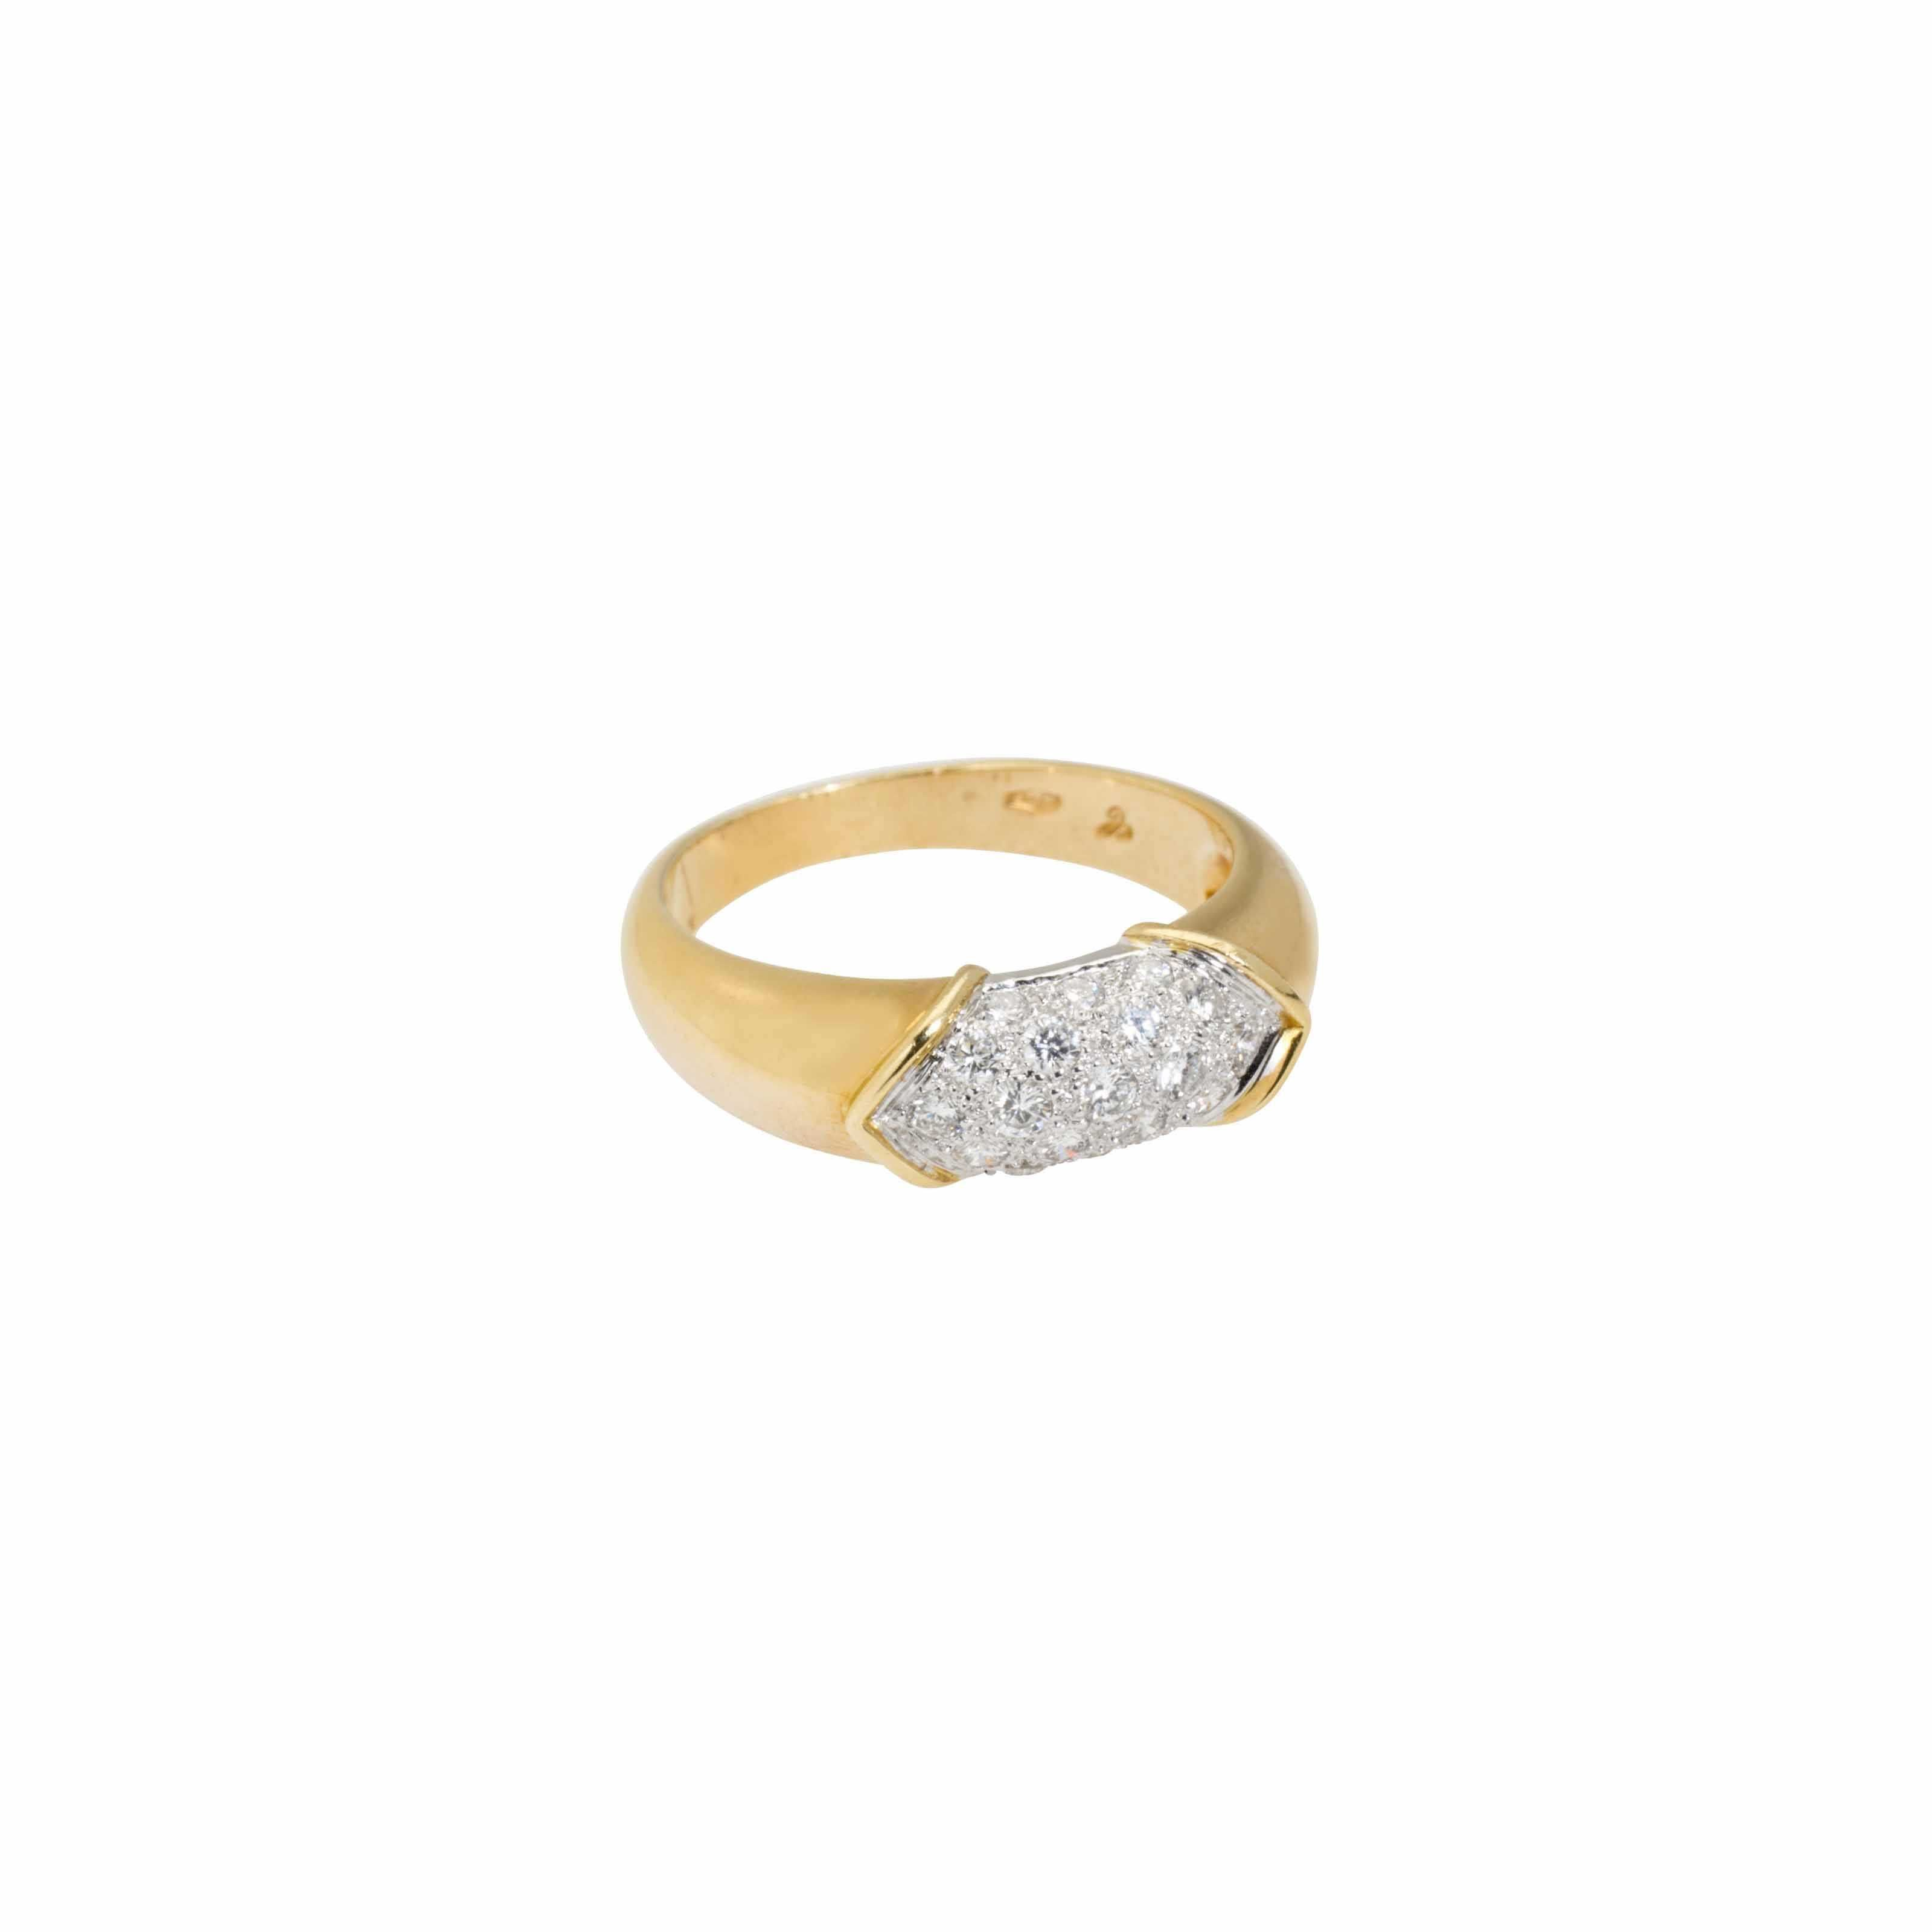 A Diamond and Gold Engagement Ring #christiesjewels  #engagement #engagementring #diamondring